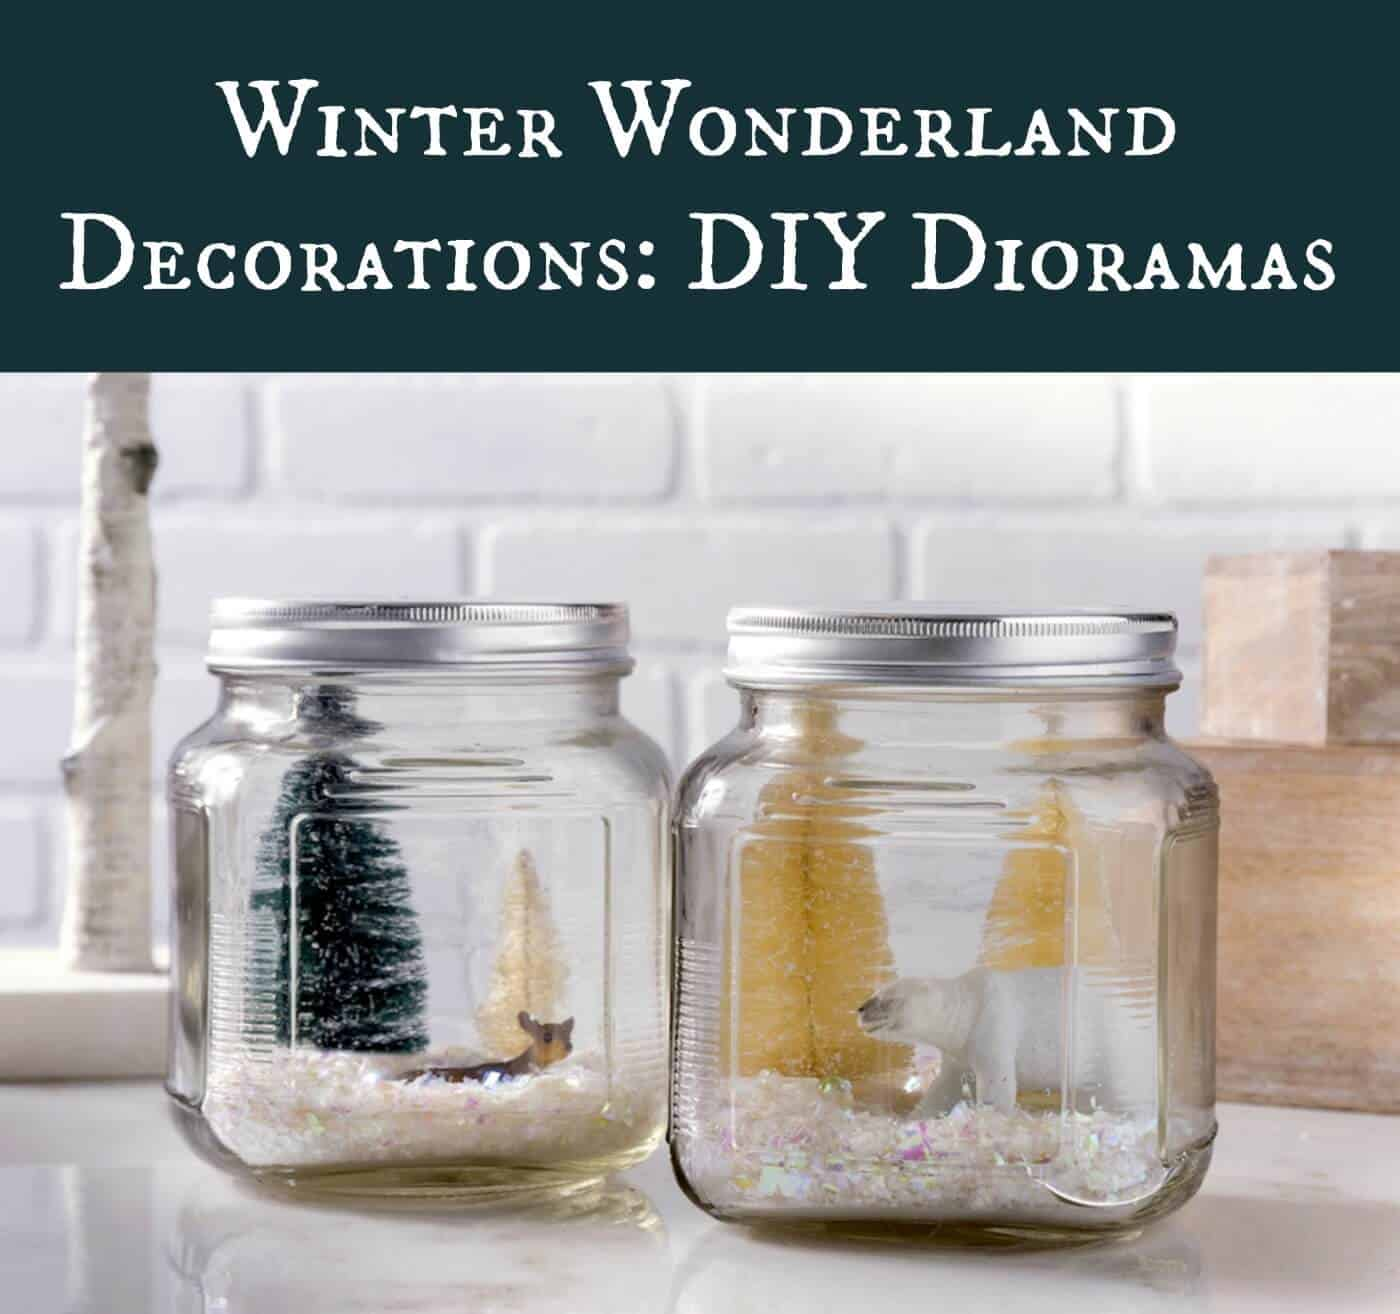 Are you looking for winter wonderland decorations? These jars are so easy to put together with a few simple supplies! Great for mantel decor.